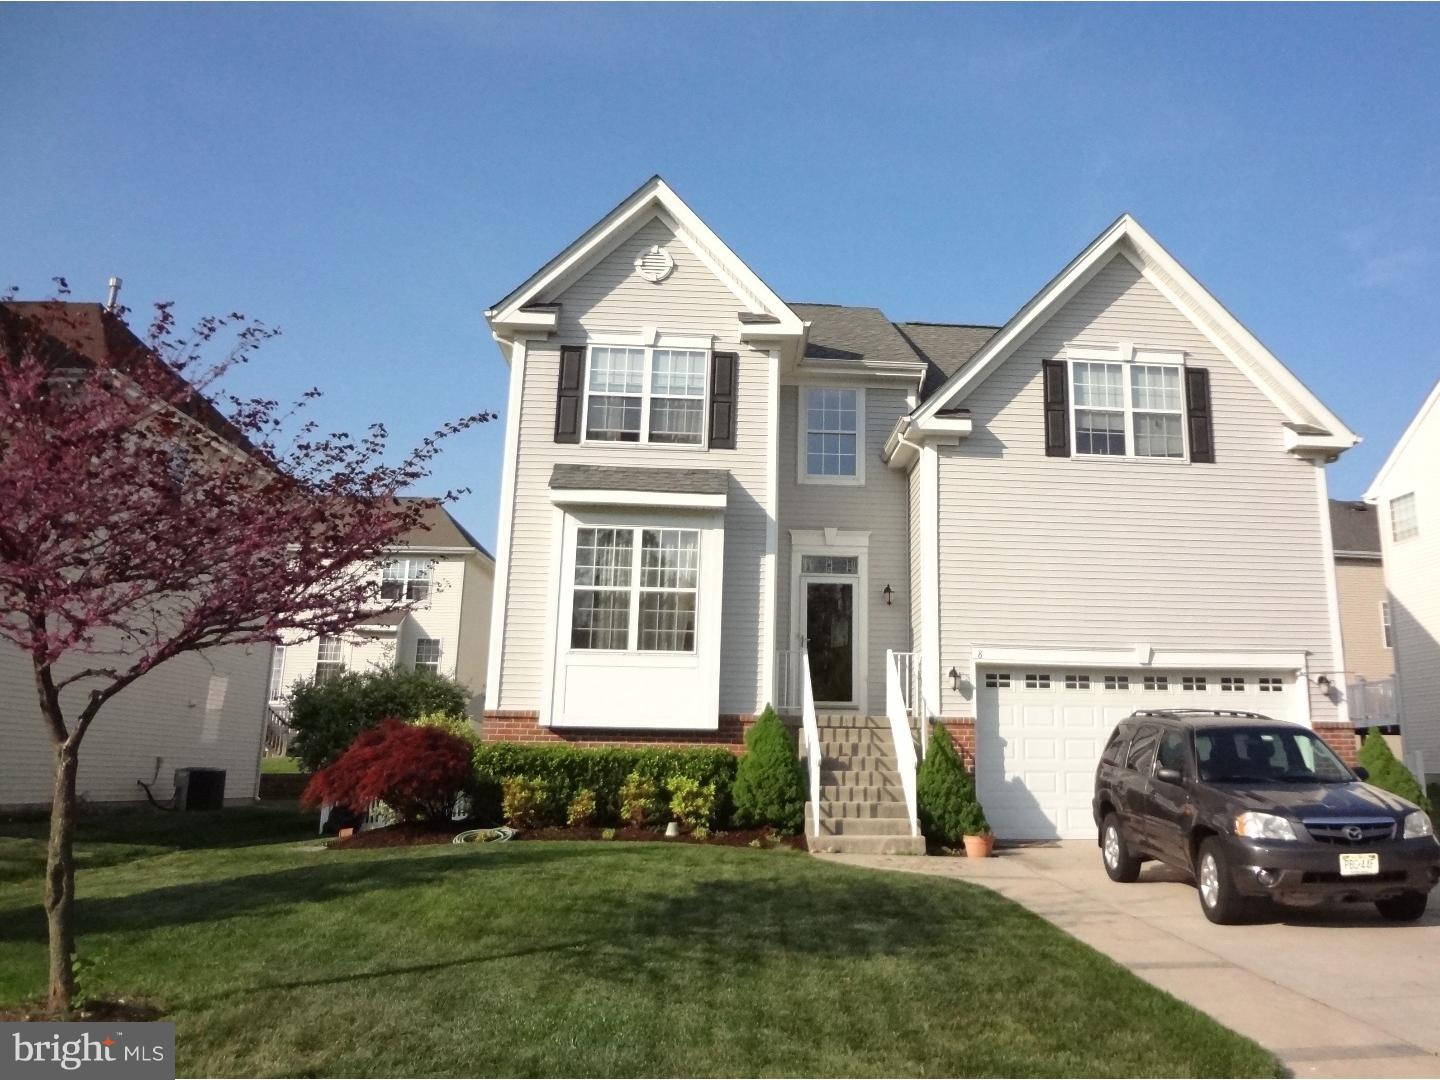 8 LIBERTY TRAIL, DELRAN, NJ 08075